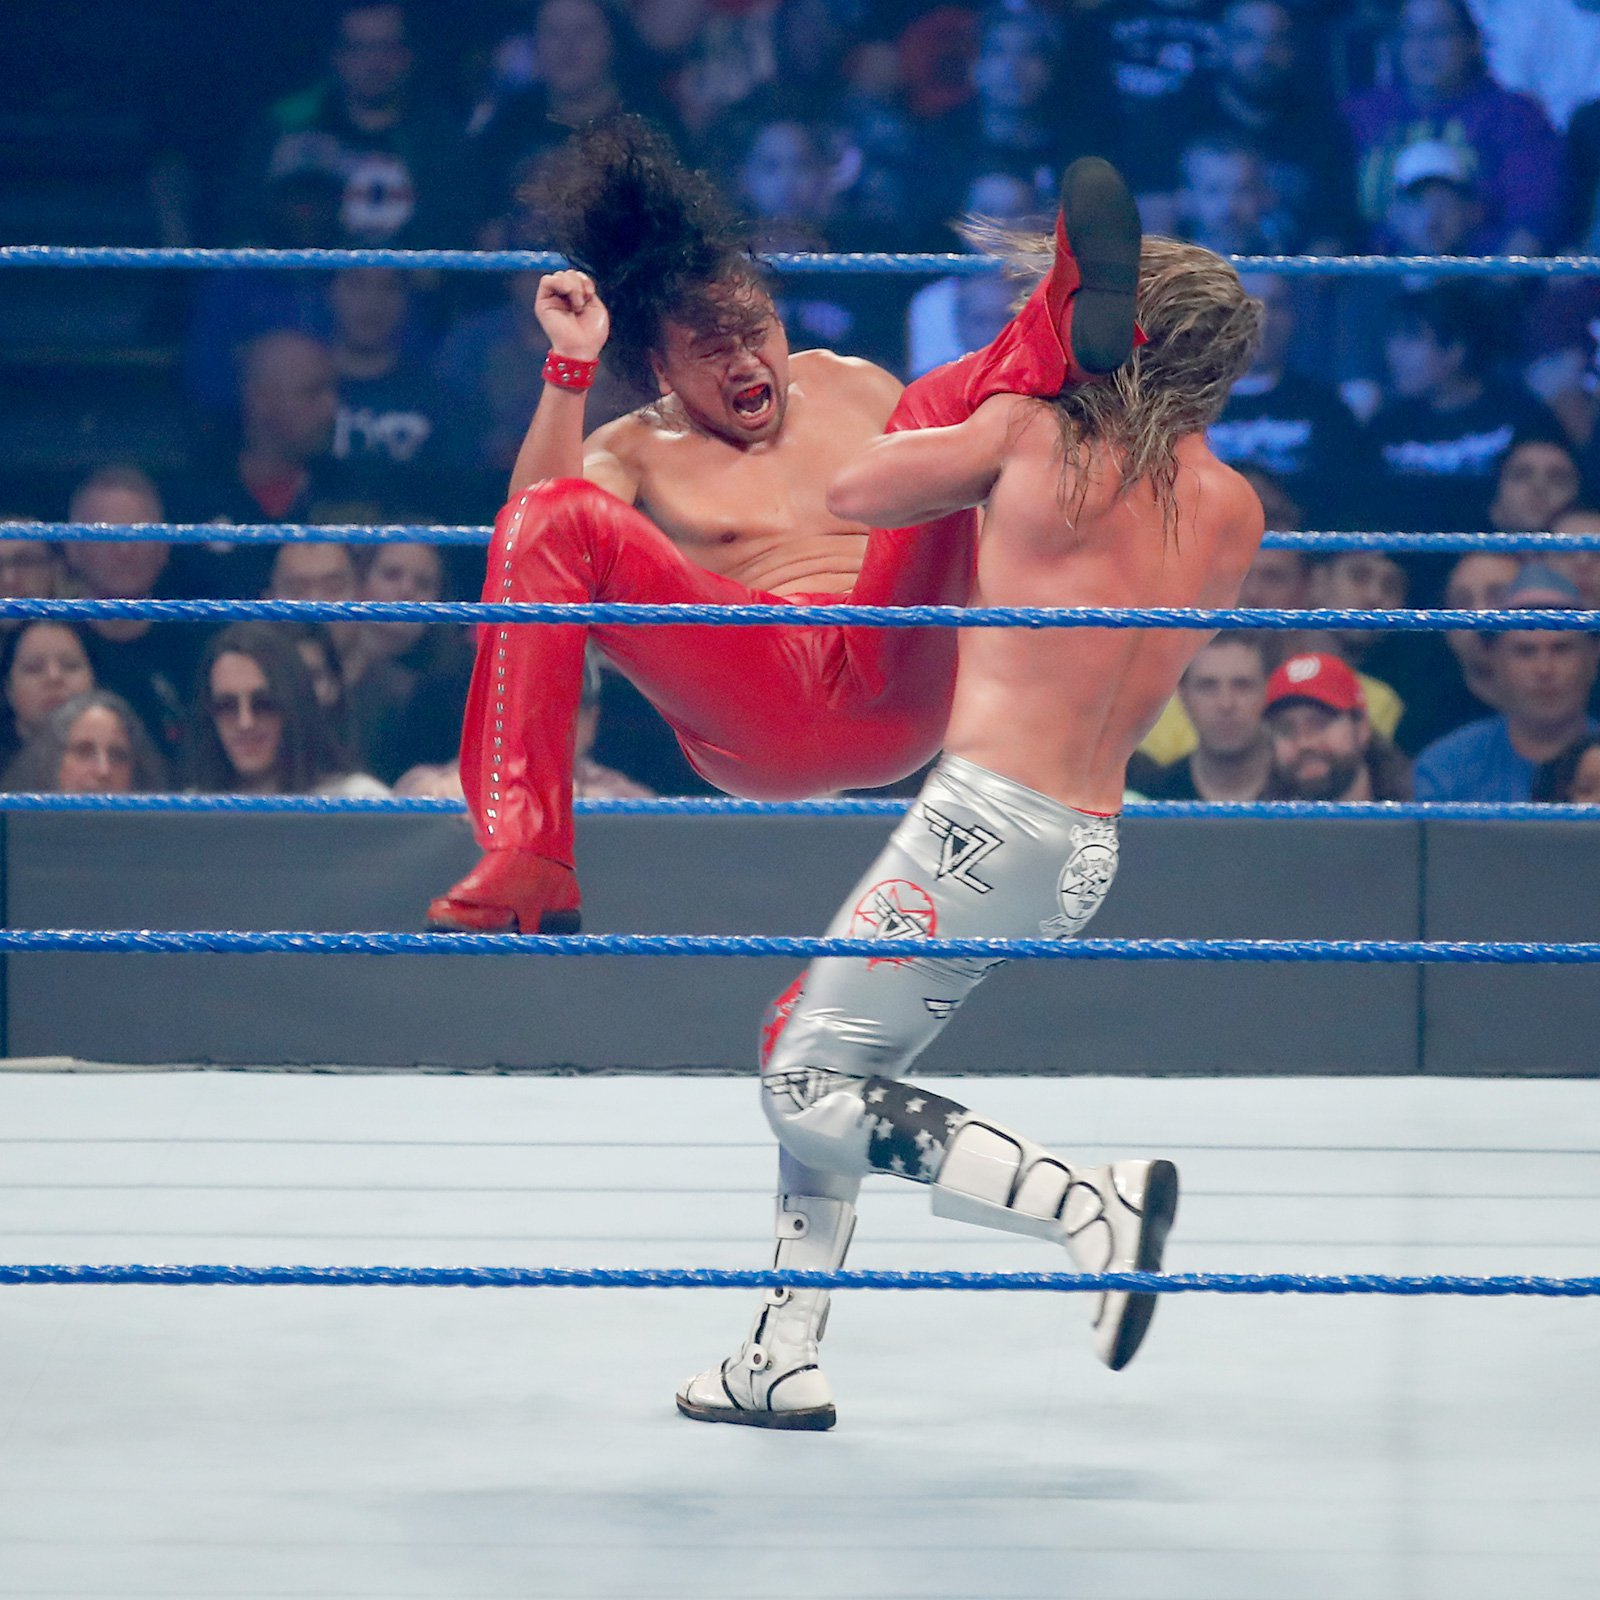 Nakamura levels his opponent with an impactful heel kick.